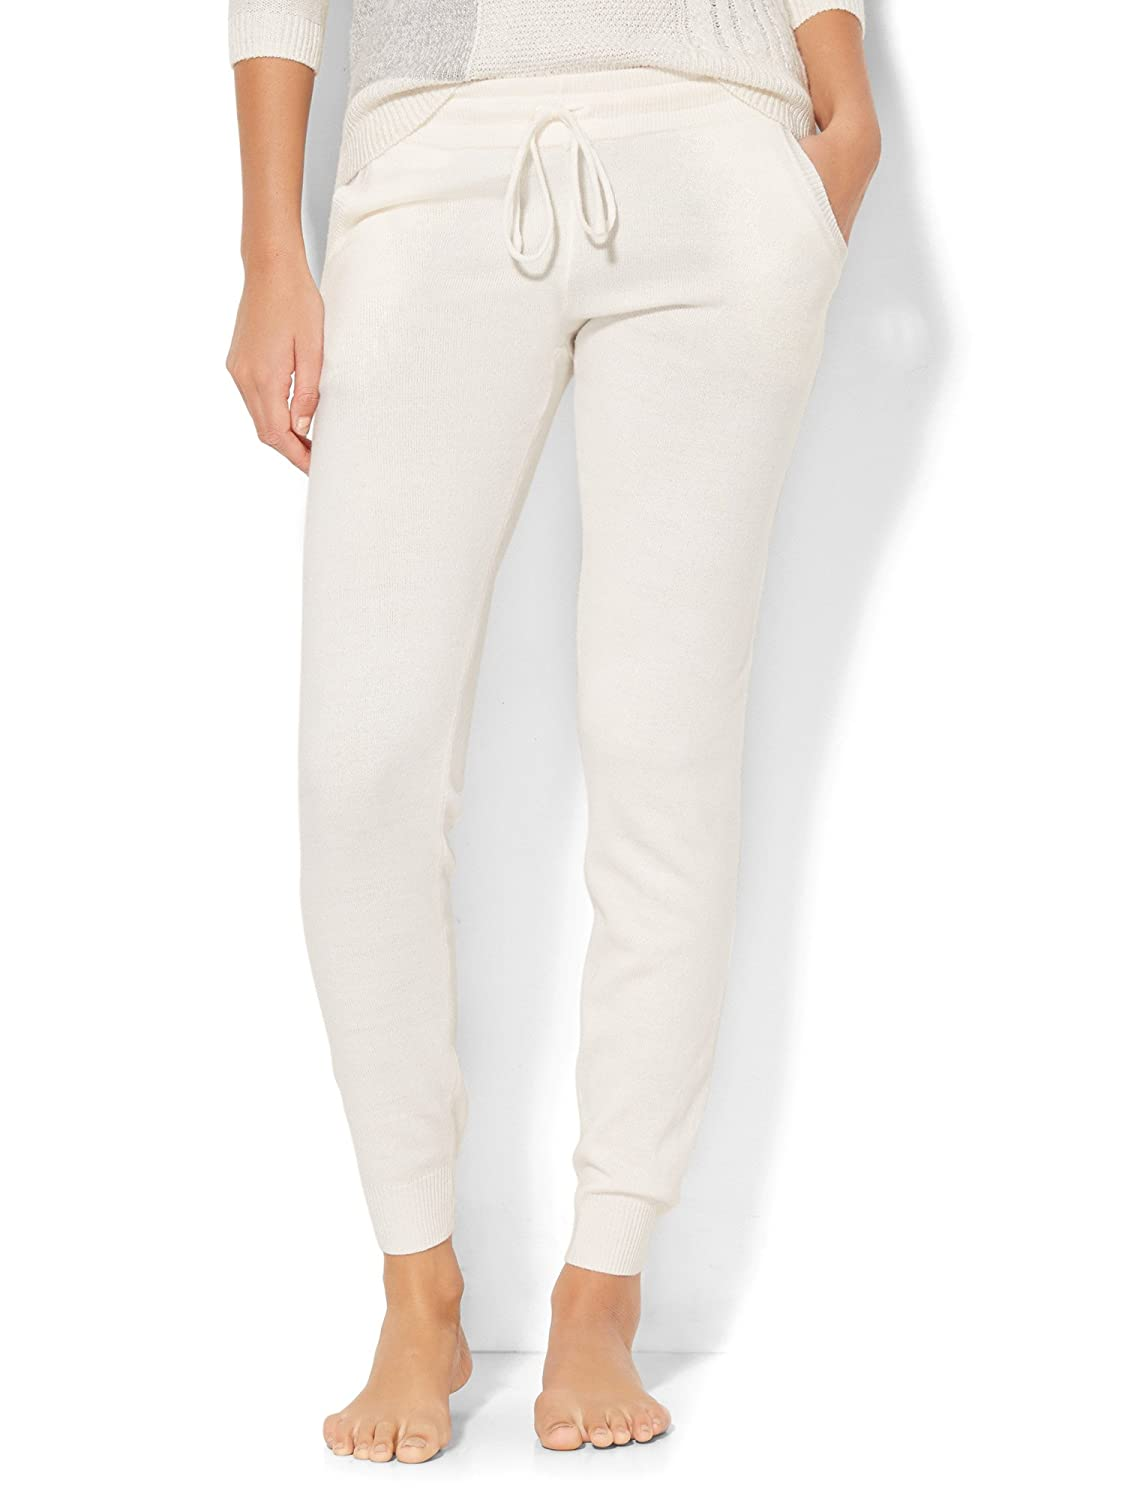 New York & Co. Women's Lounge - Sweater Jogger